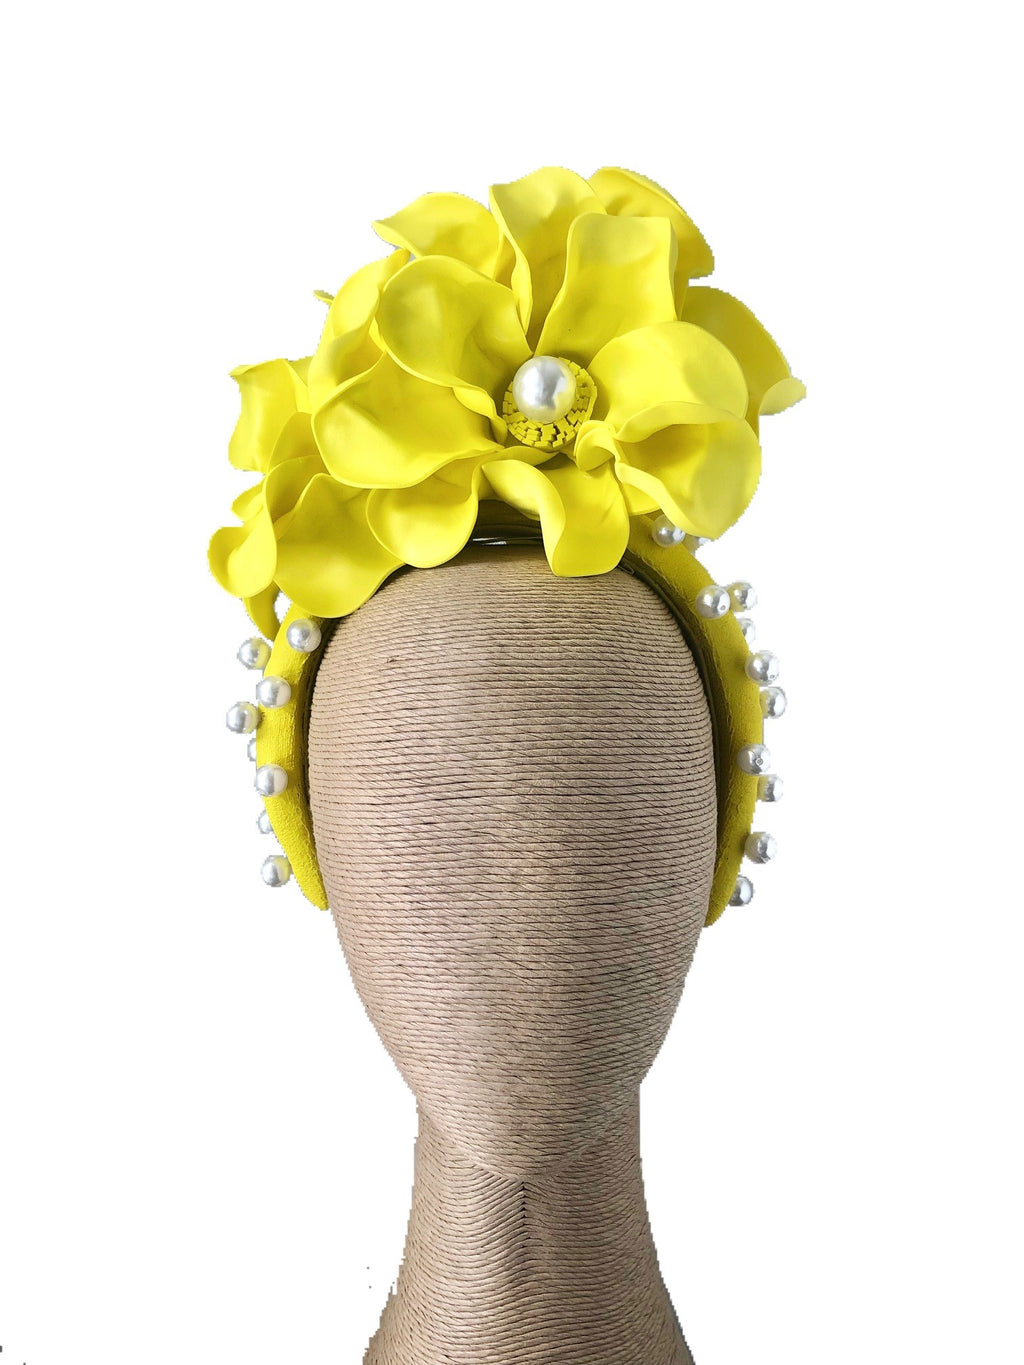 Claire Hahn Elysa Headband with Foam Flowers in Fluro Yellow